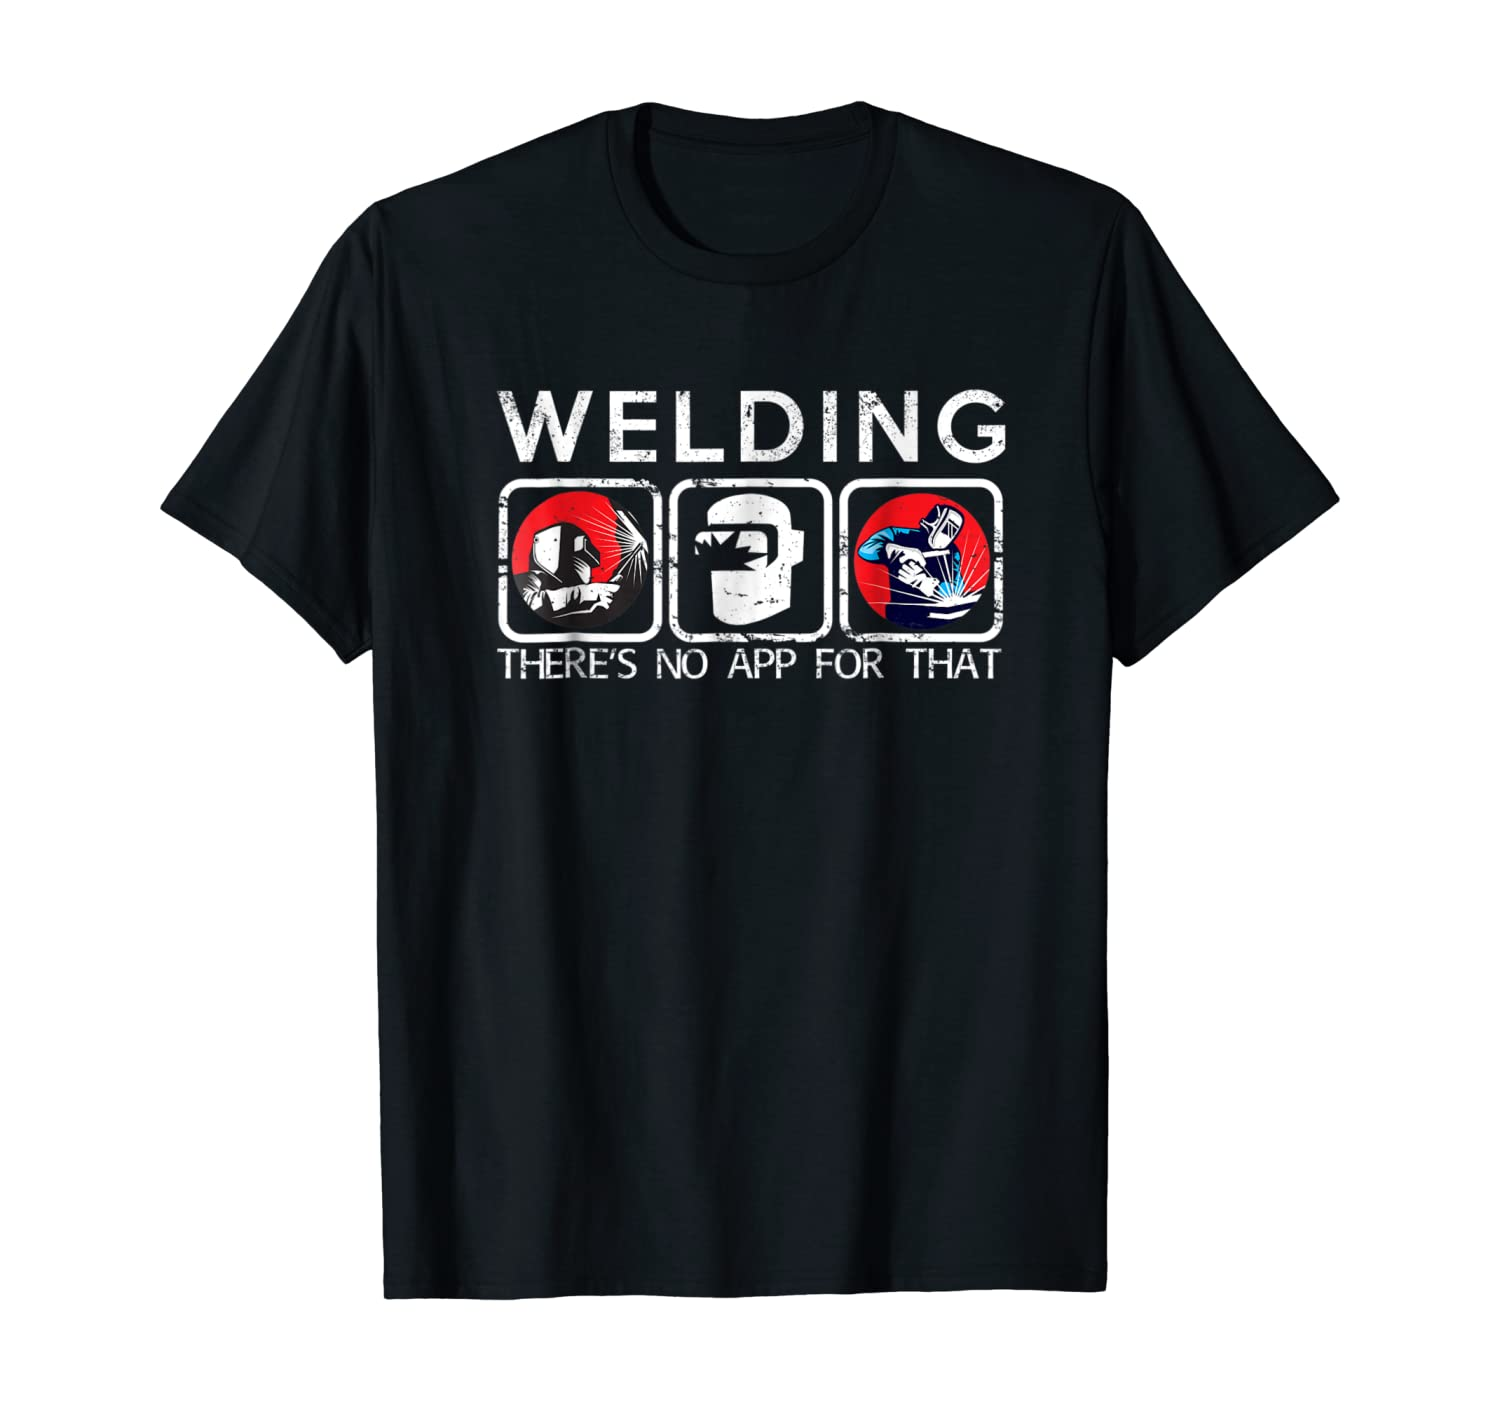 Welding There's No App for that Funny Shirt for Welders